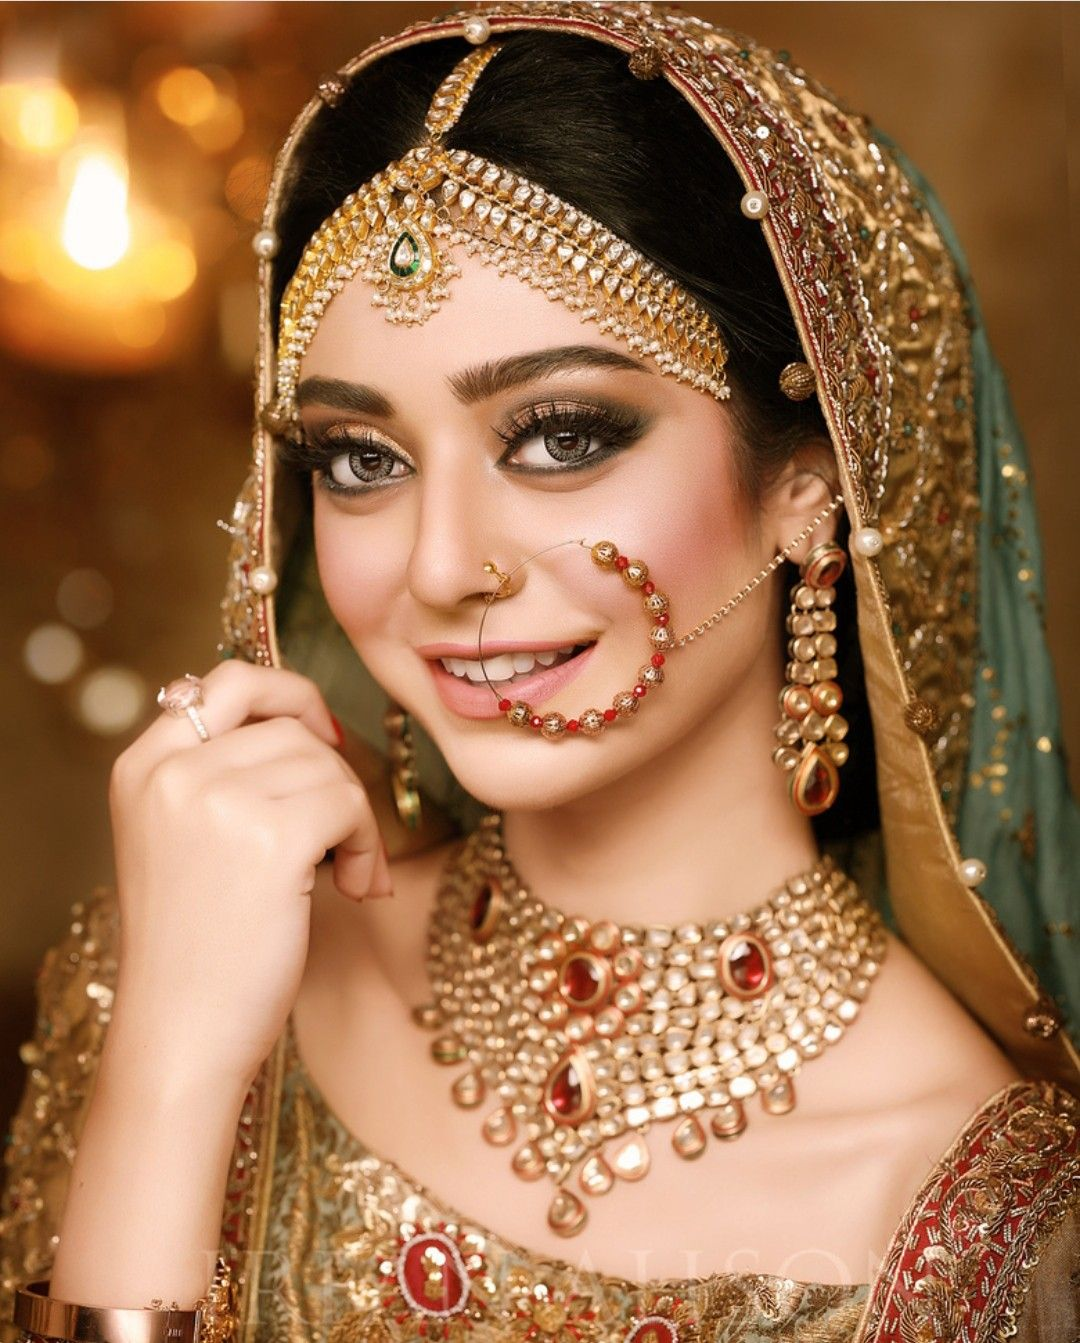 Pin by munazza j on wedding diaries | Indian bride makeup, Indian bridal makeup, Indian muslim bride